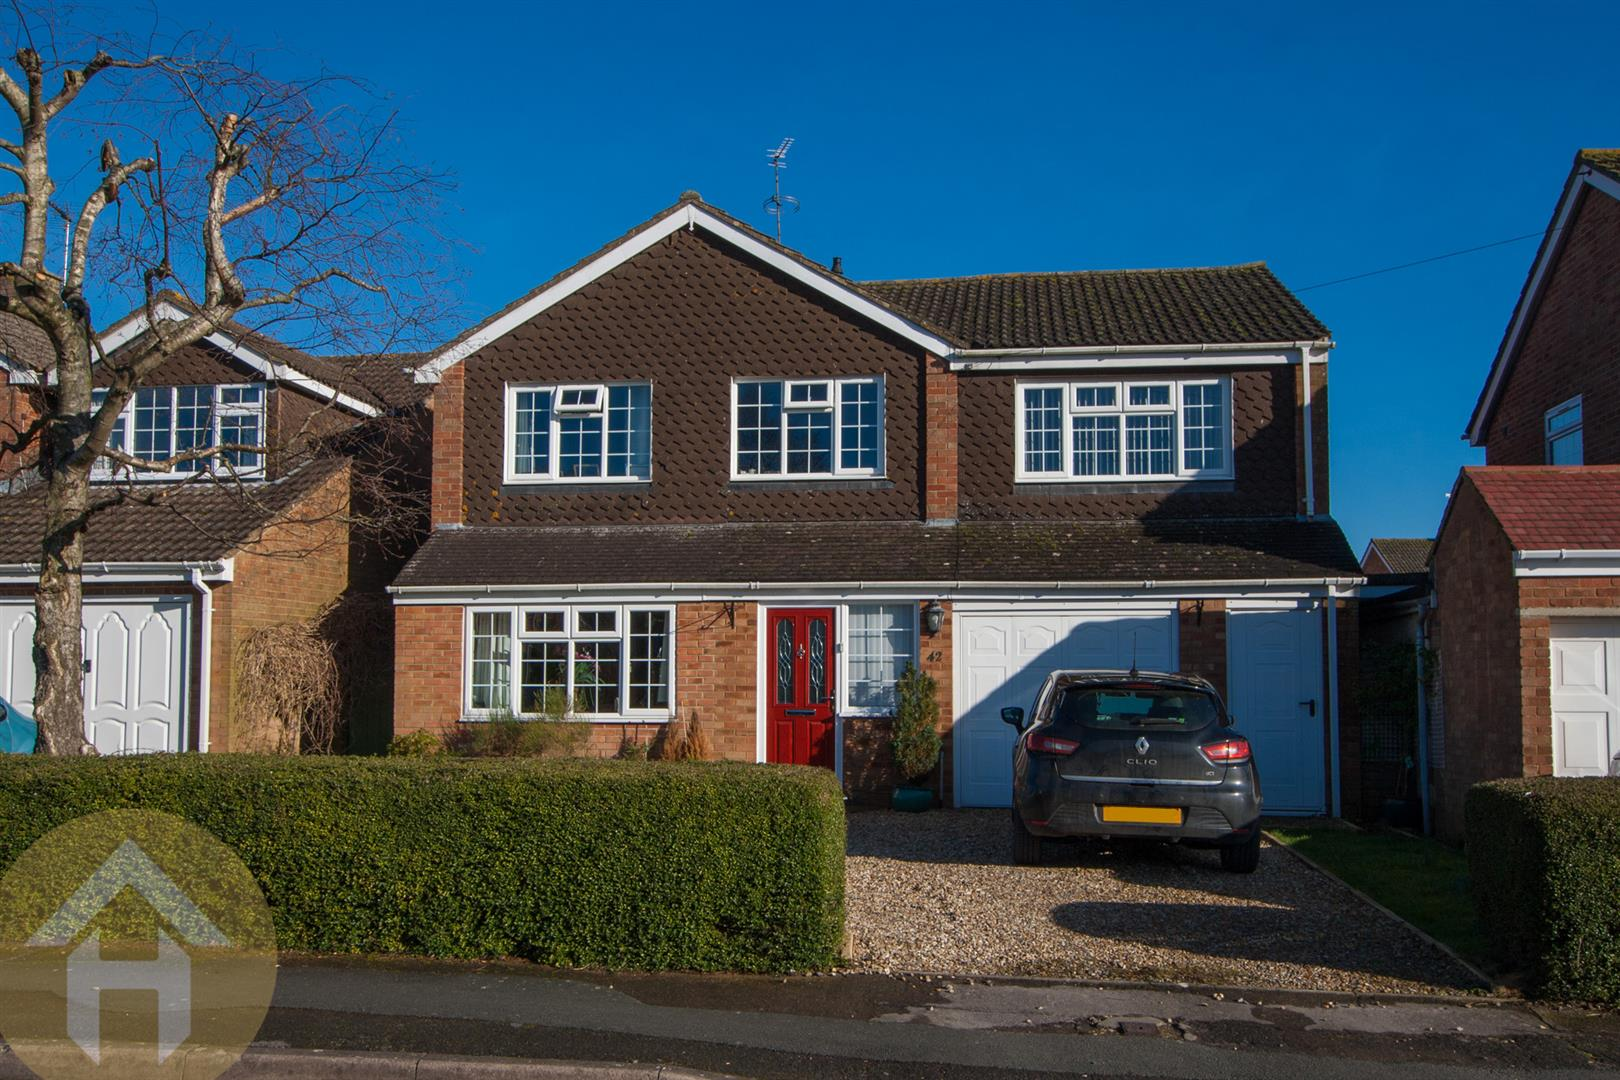 5 Bedrooms Detached House for sale in Shakespeare Road, Royal Wootton Bassett.